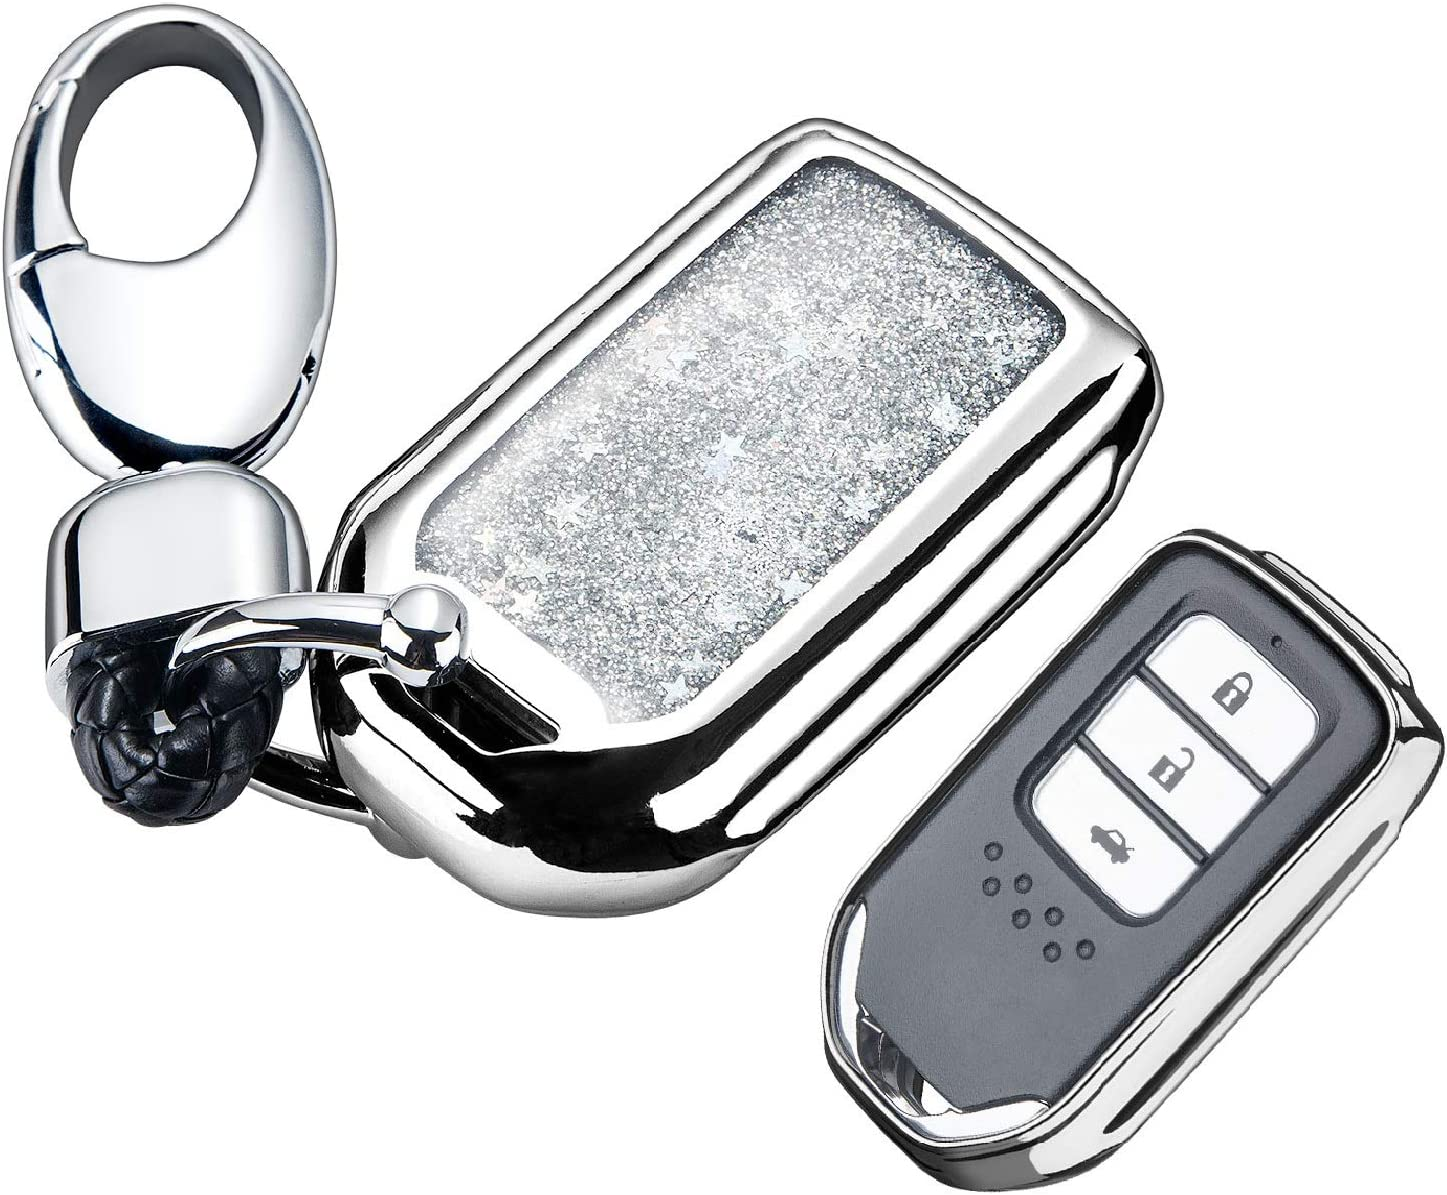 Key Fob Cover with Spring new work one after another Glitter Sparkl Liquid National products Bling Quicksand Flowing